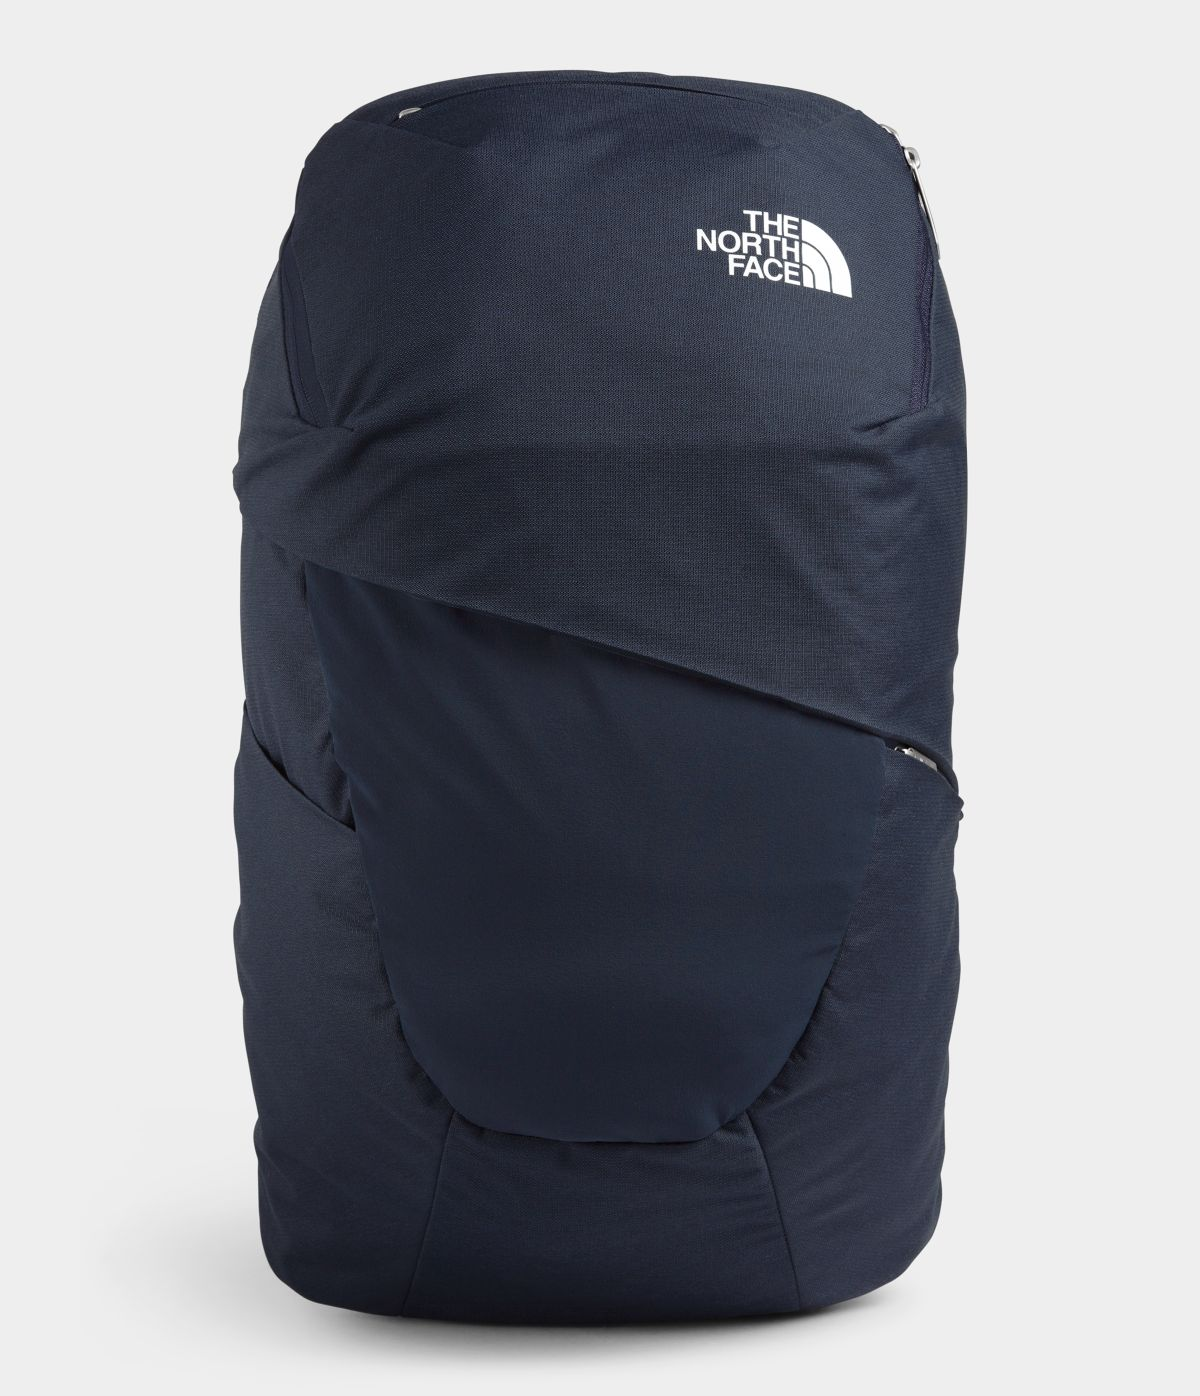 Women's The North Face Aurora Backpack in Aviator Navy Light Heather/TNF White from front view